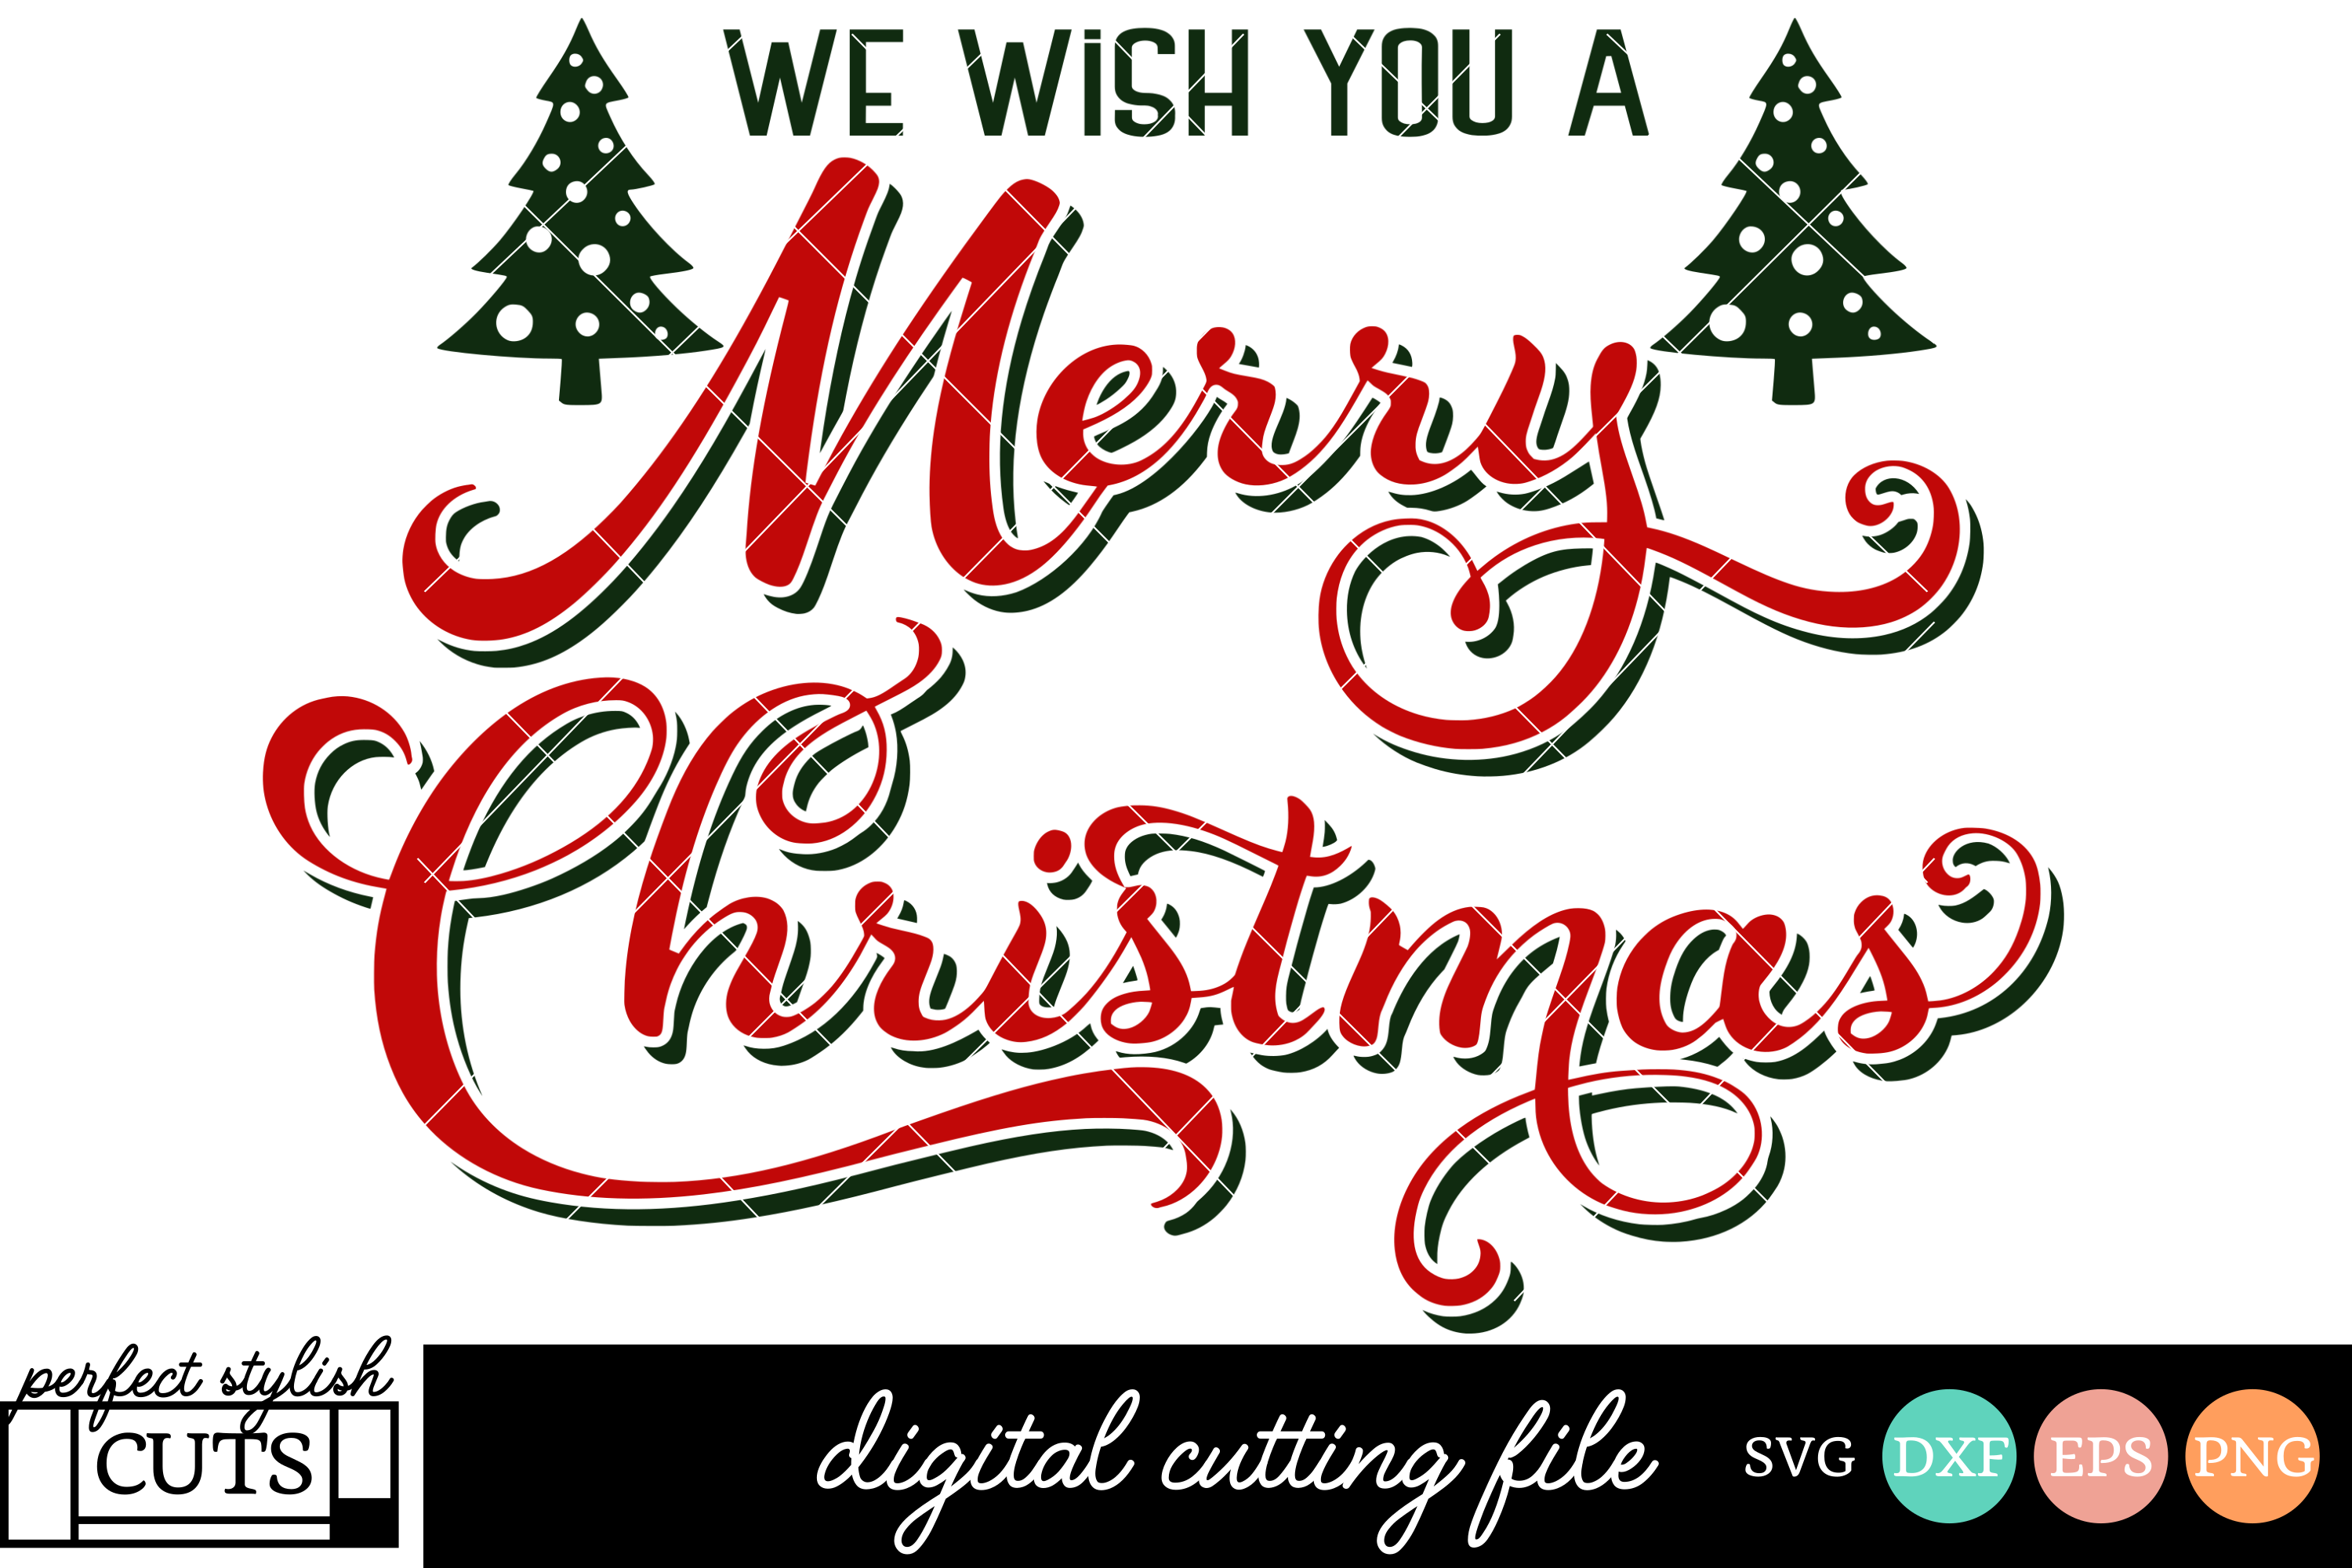 Christmas Svg We Wish You A Merry Chri 1212756 Png Images Pngio